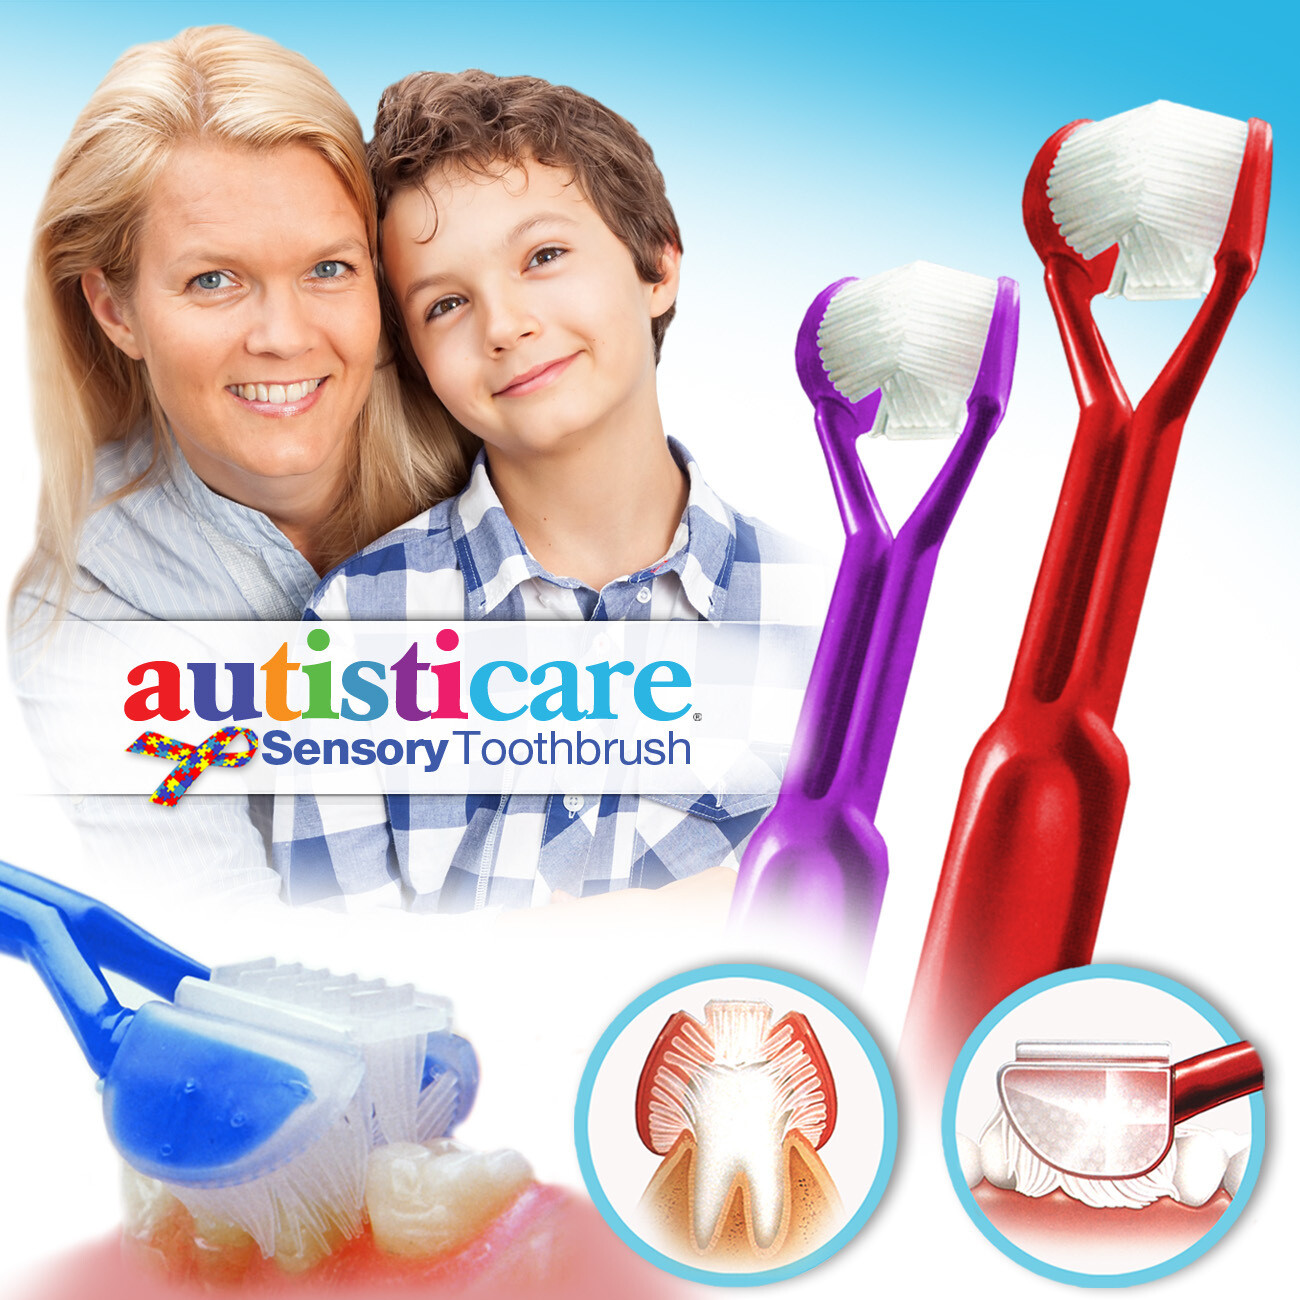 2-PK: Autisticare Sensory Toothbrush :: Special Needs 3-Sided Toothbrush :: Fast, Easy & More Effective :: Complete Dental Care for Autism ASD Autistic